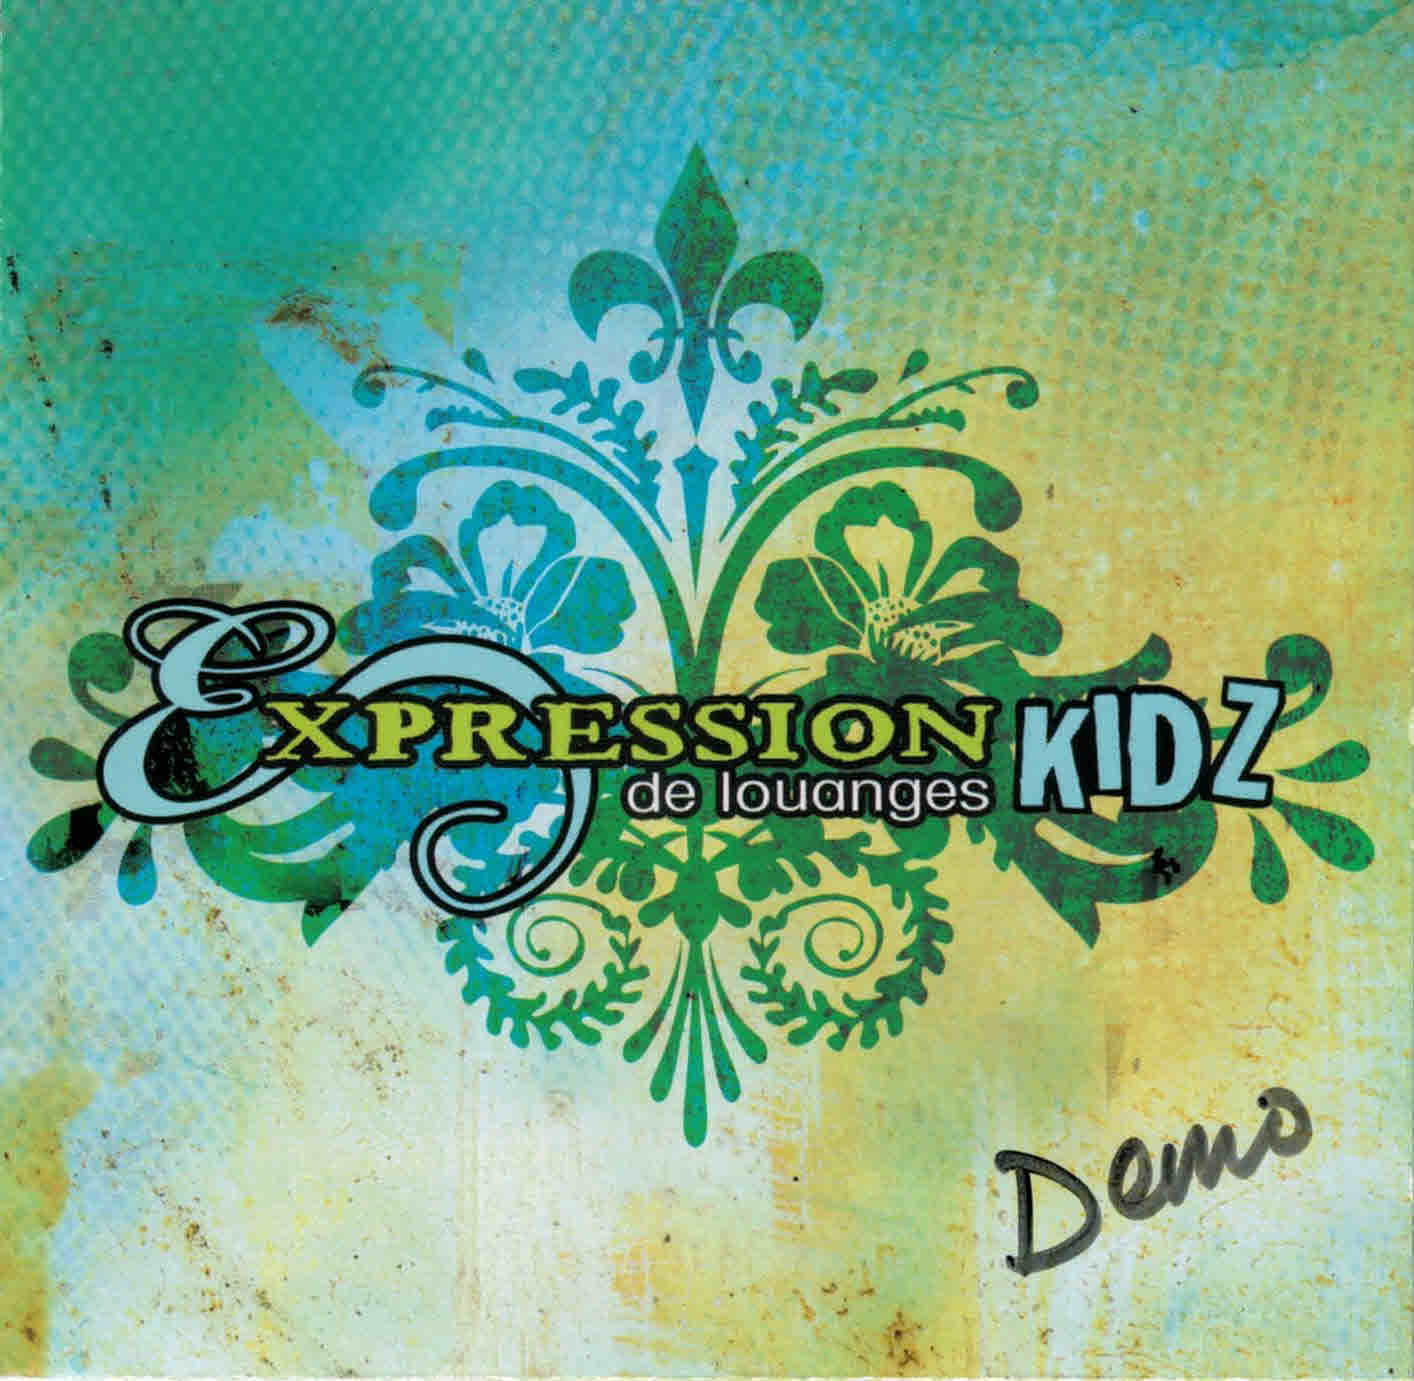 CD Expression de louanges Kidz